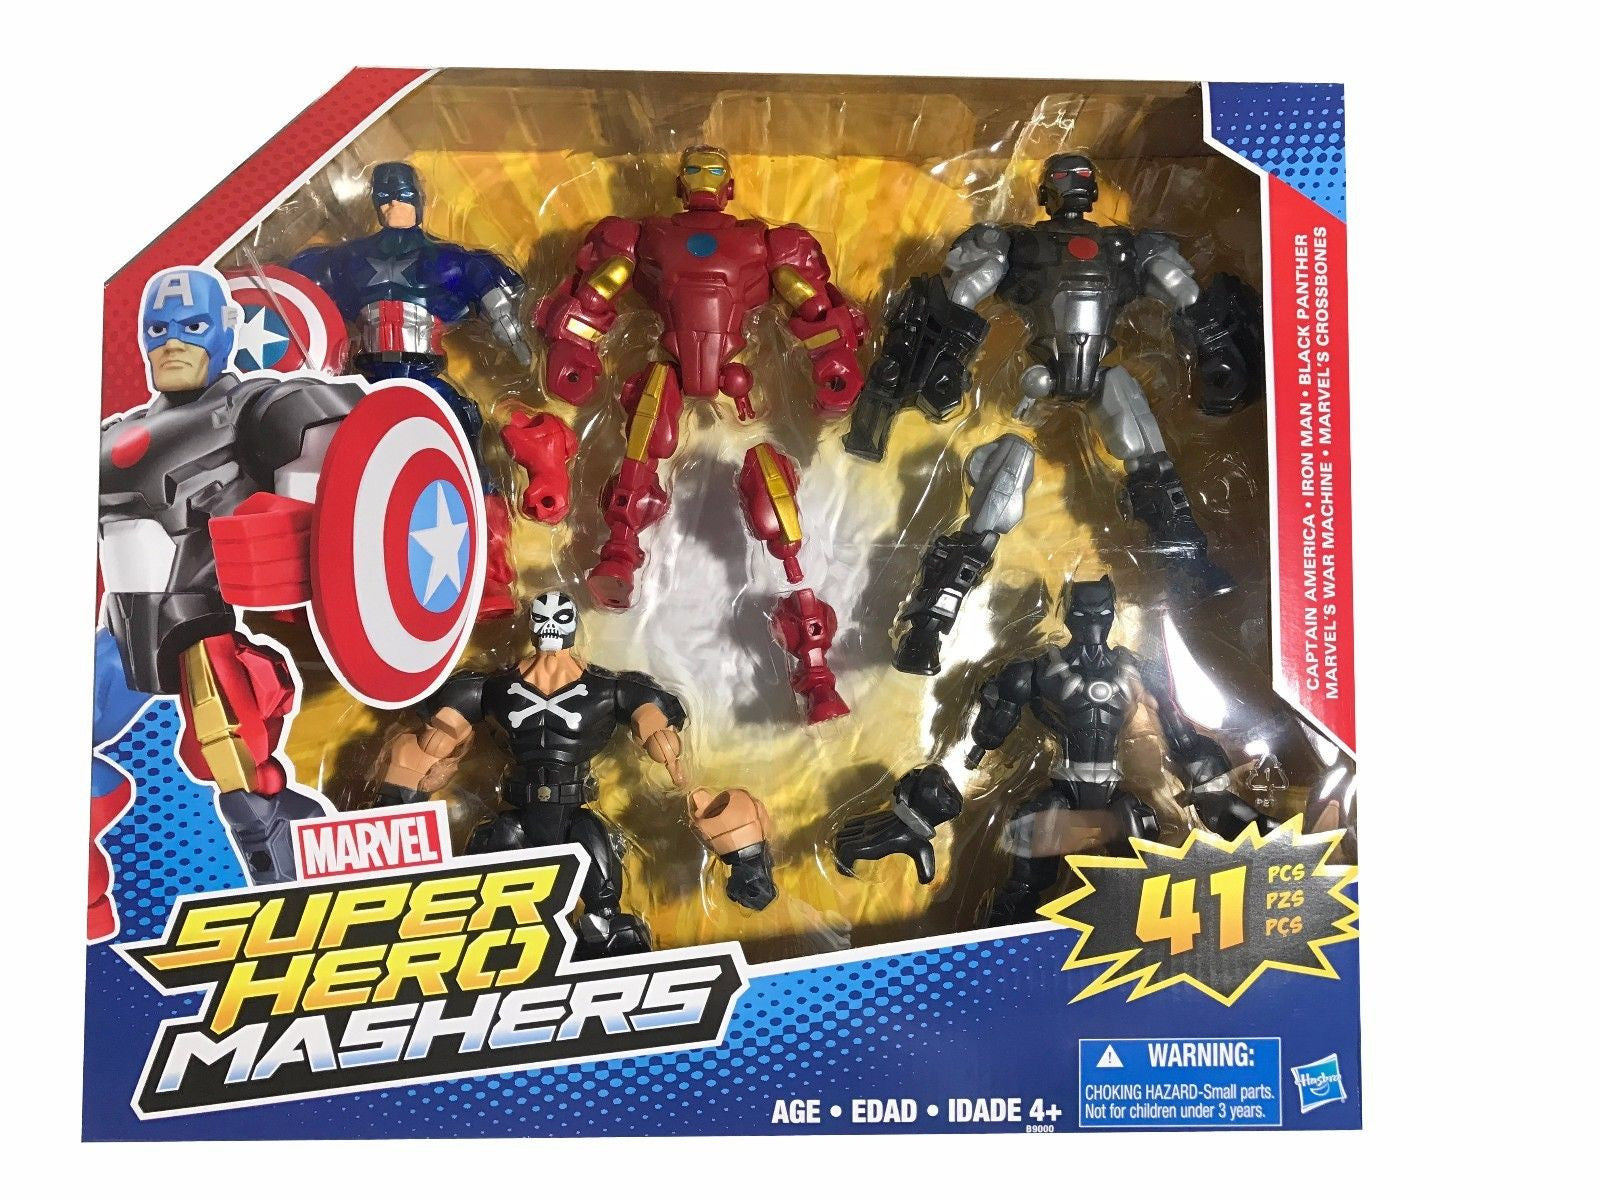 Marvel Super Hero Mashers 41 Pcs Captain America, Iron Man, Black Panther